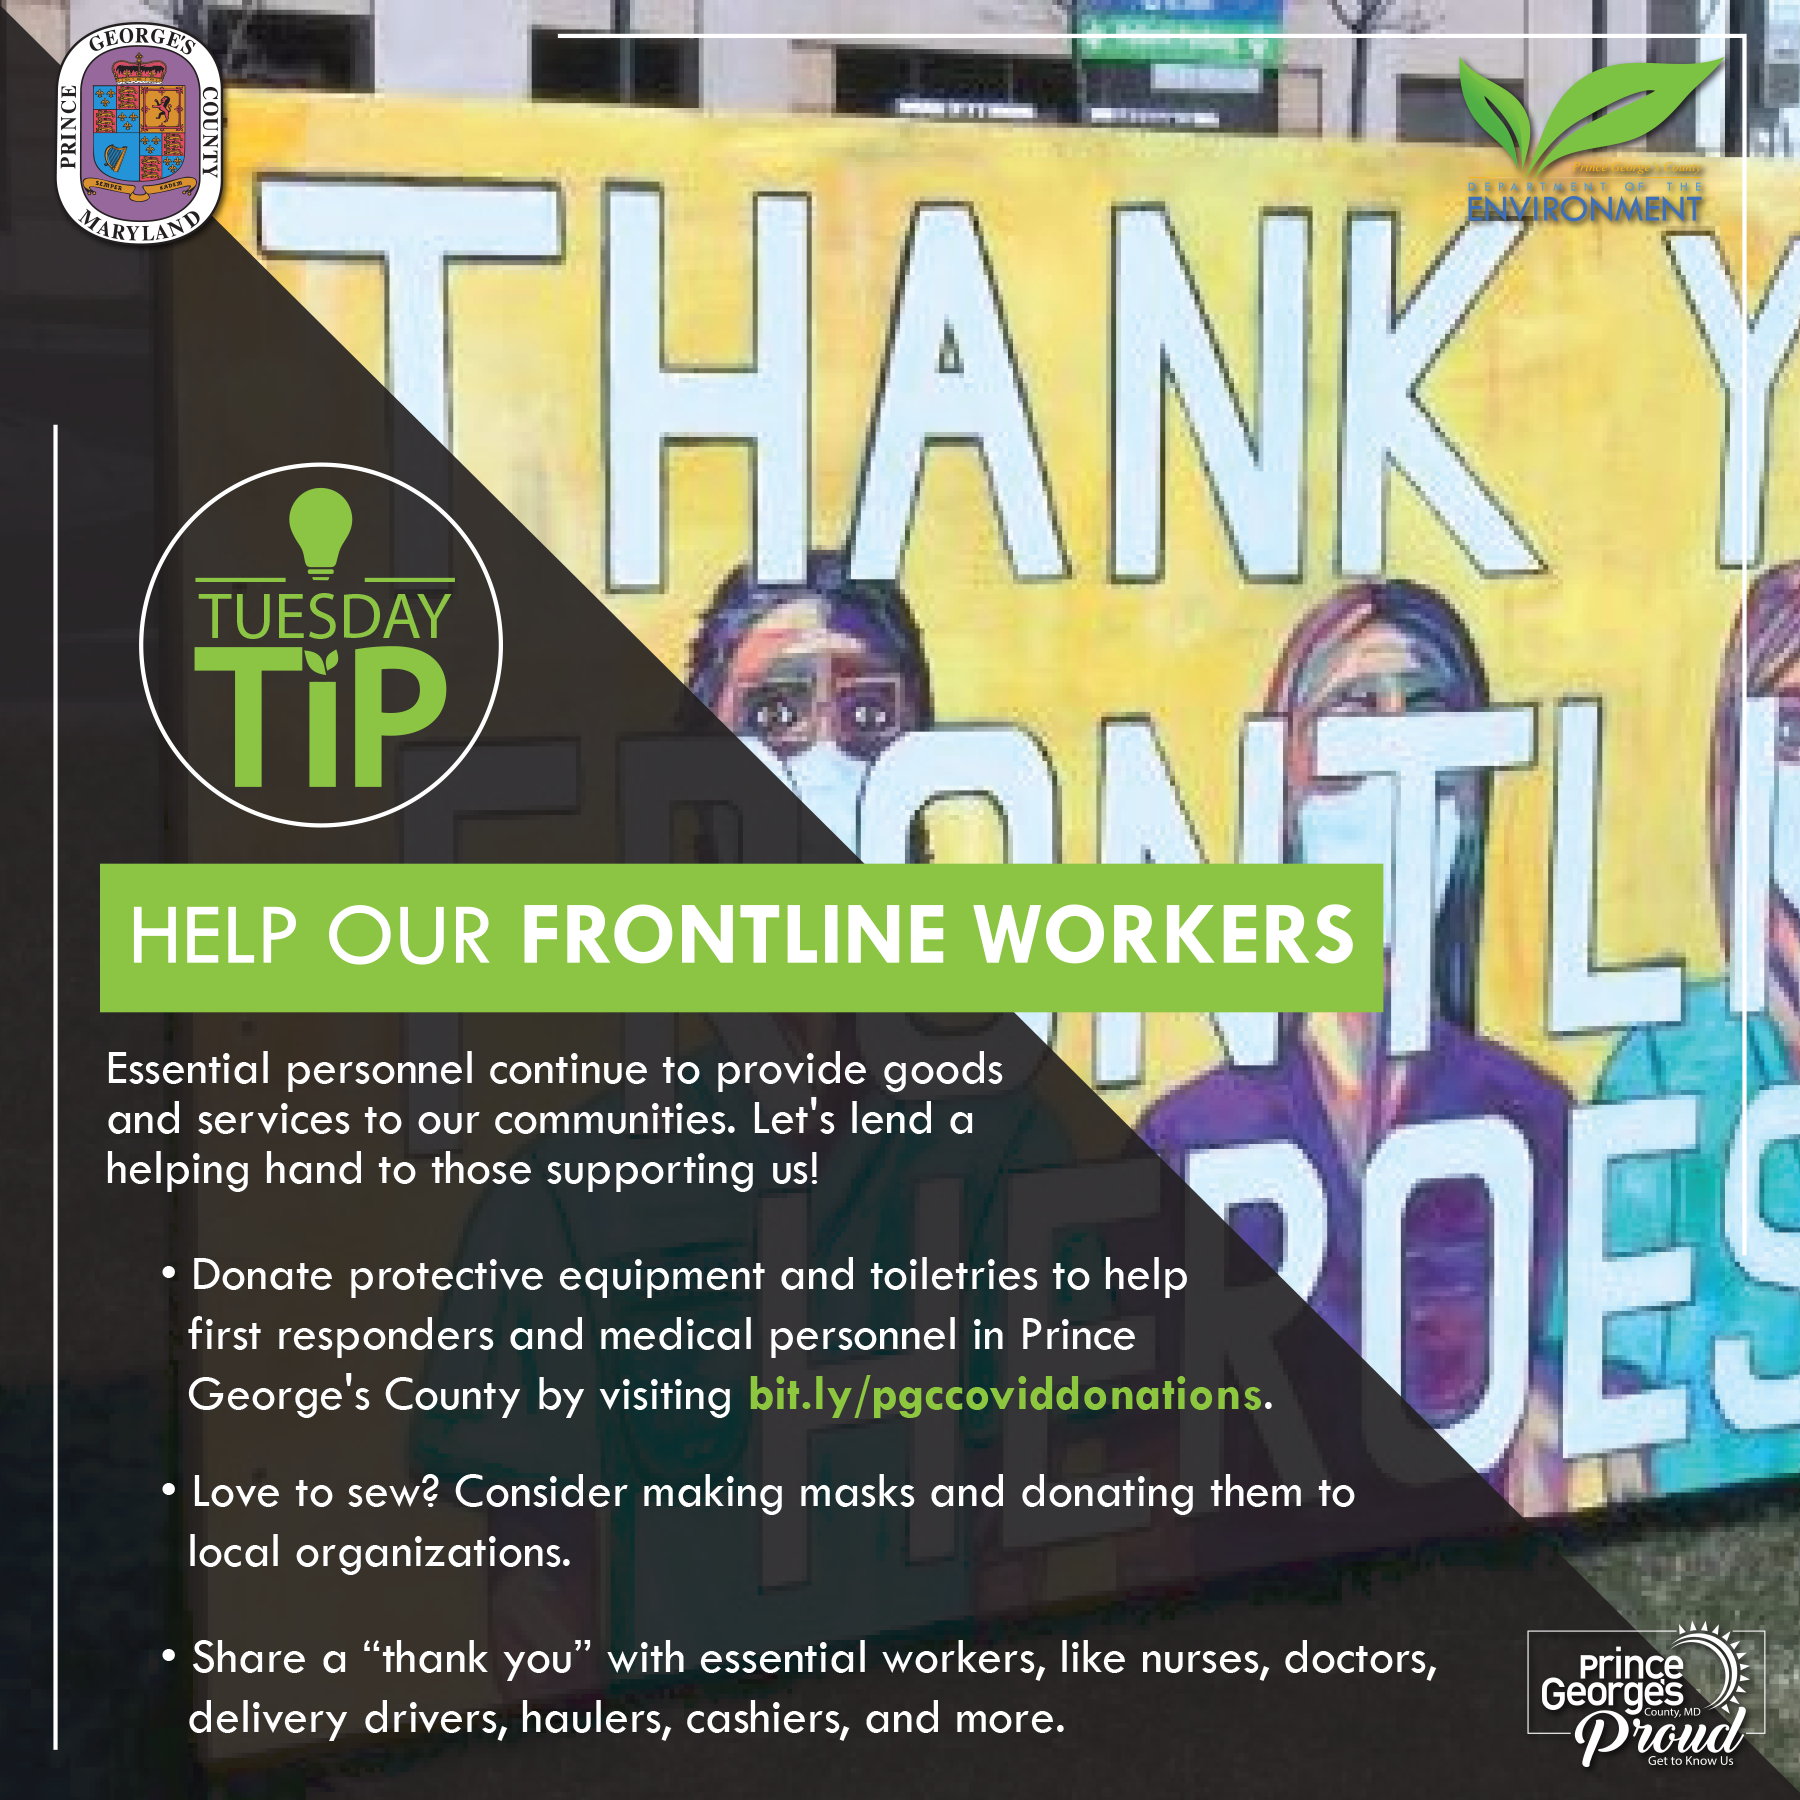 Tues tip 9.8.20 Frontline workers eng